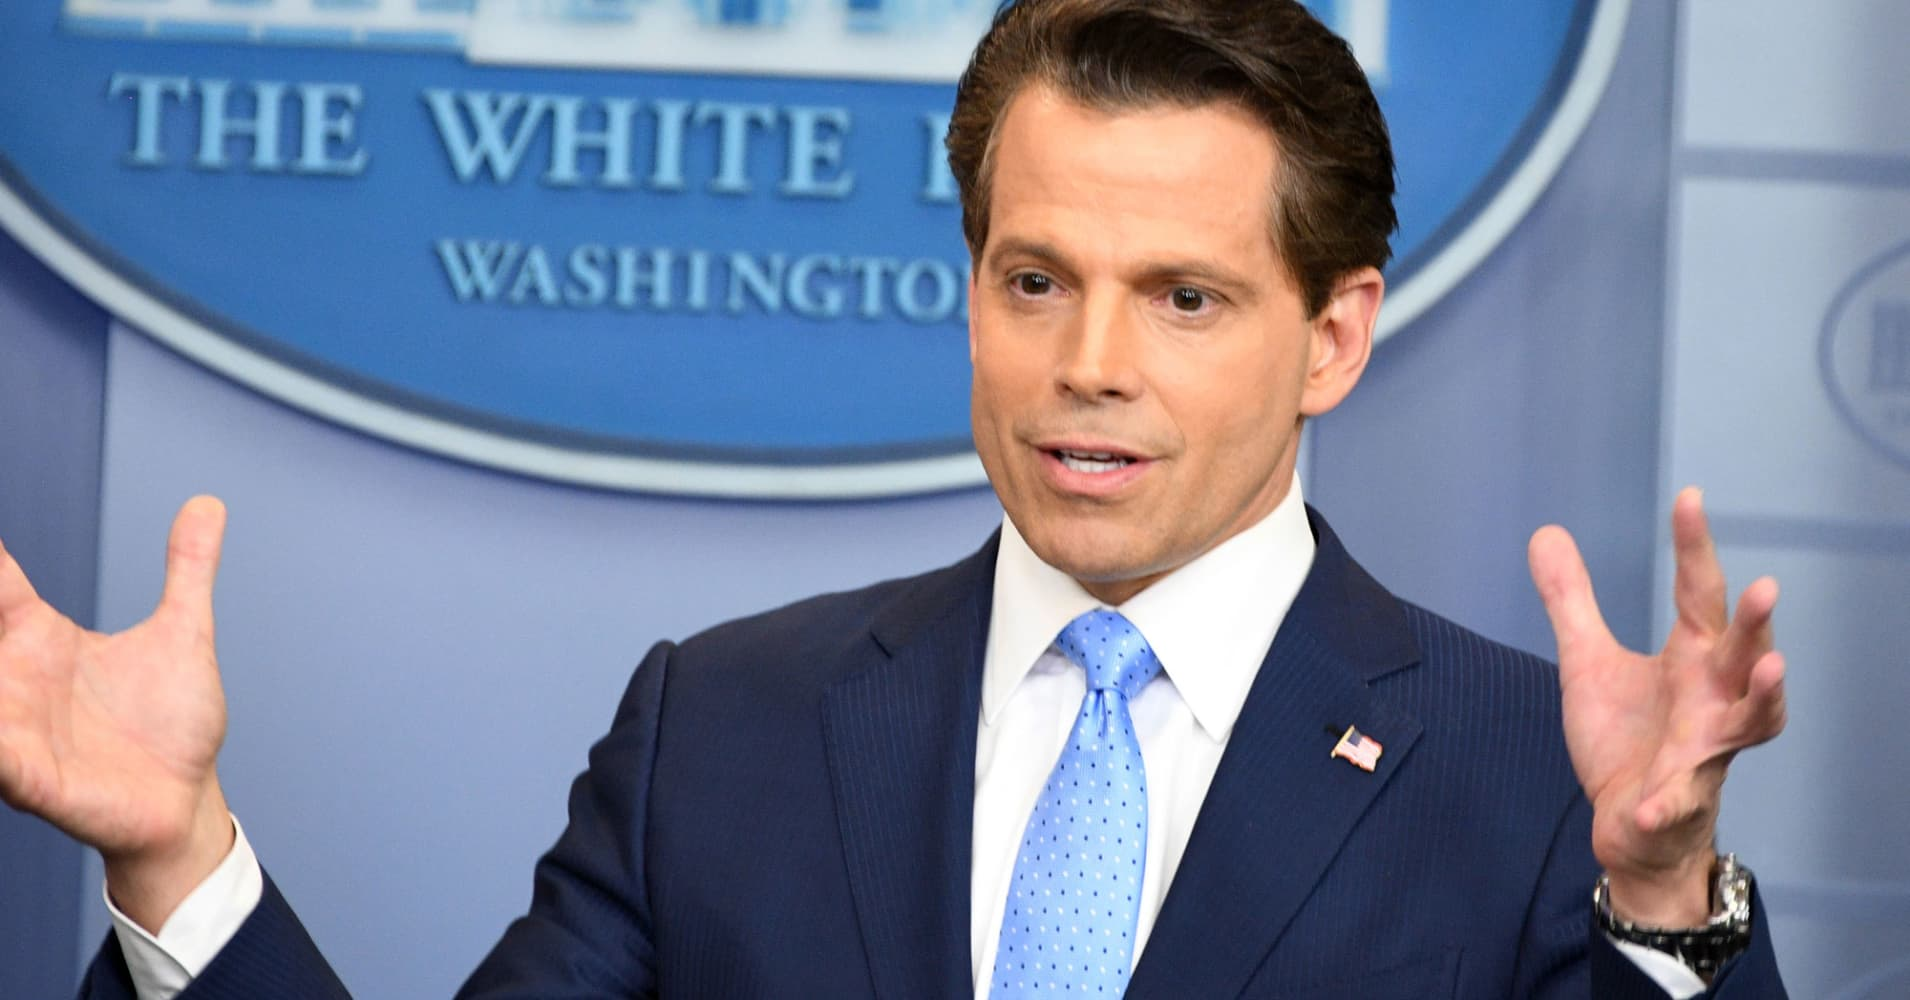 Hiring smooth-talking Scaramucci as a mouthpiece won't pull the White House out of its rut